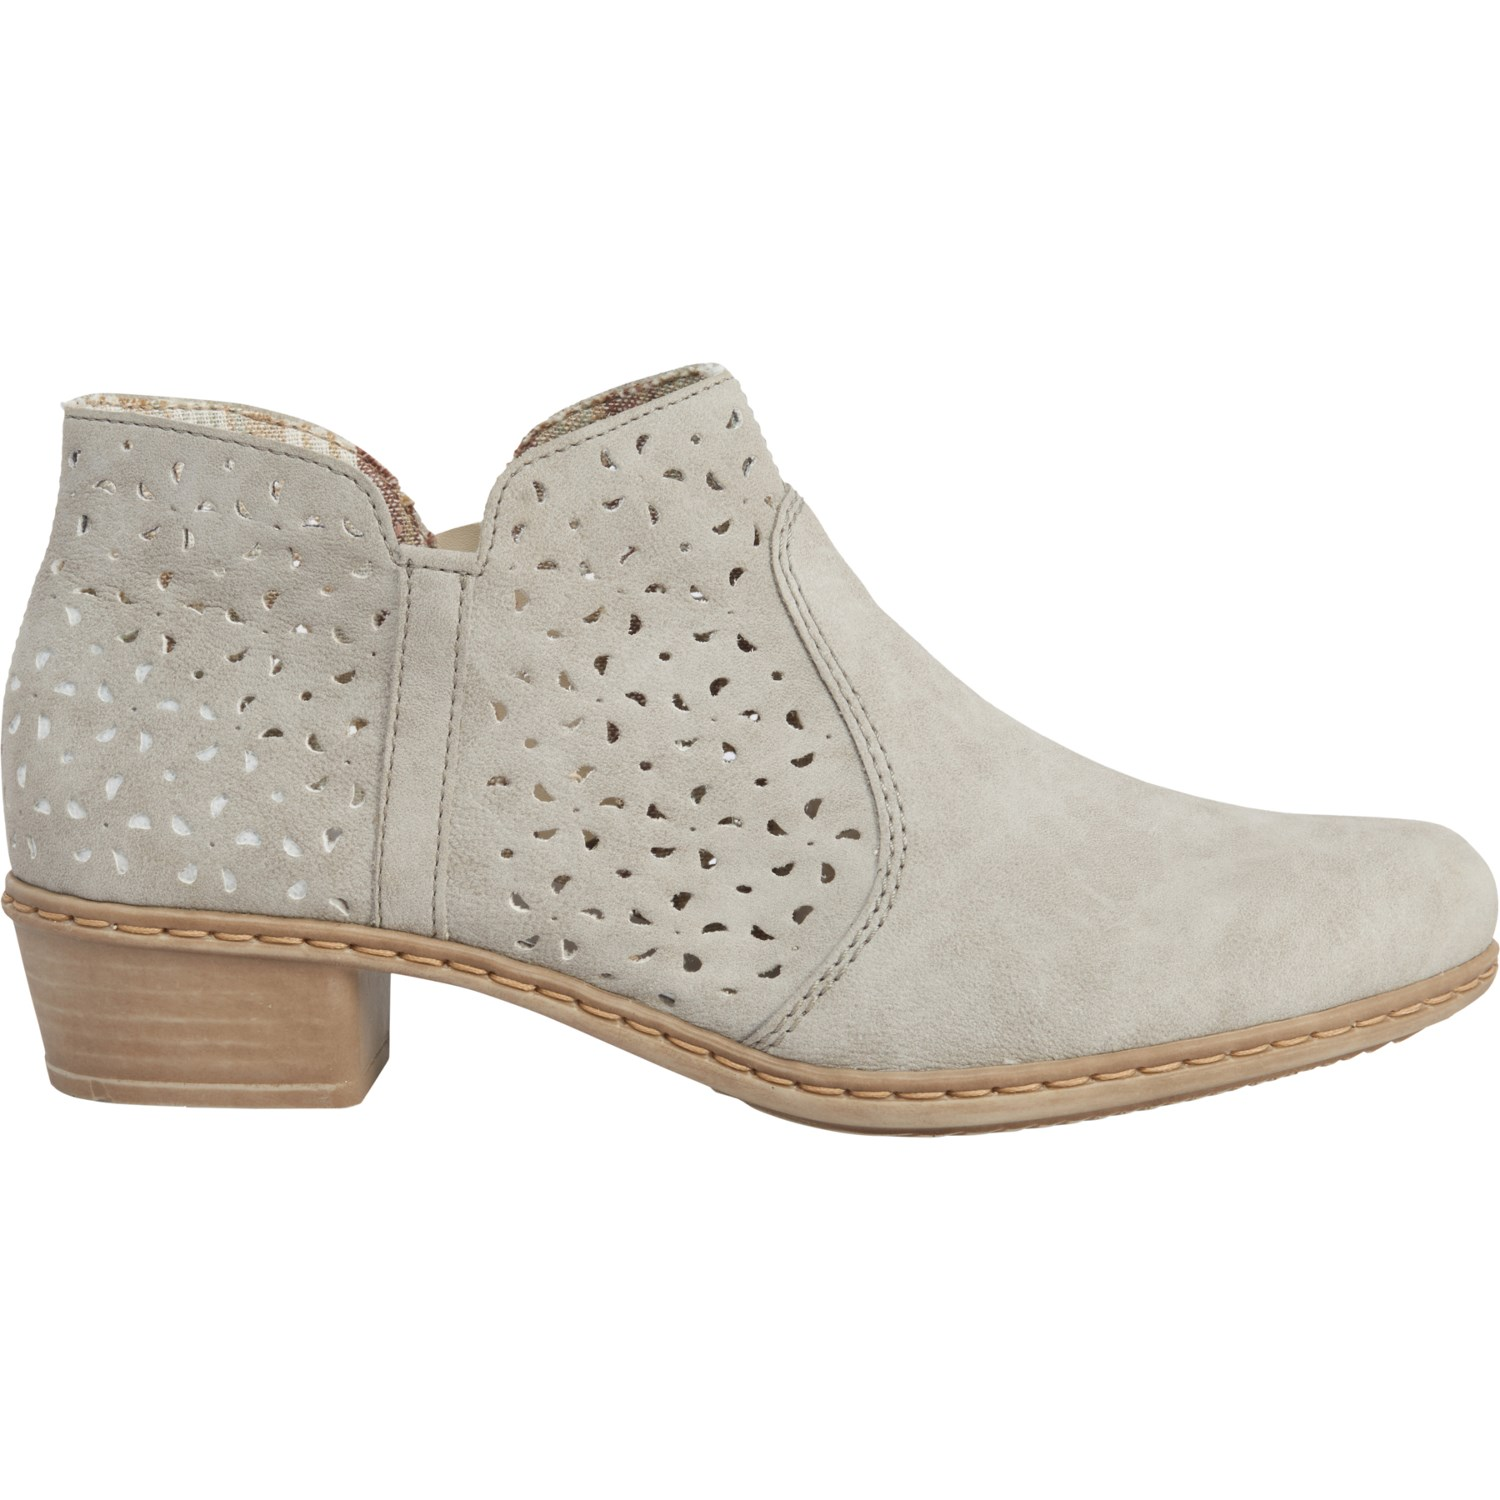 Rieker Fabiola 85 Perforated Shootie Ankle Boots (For Women)